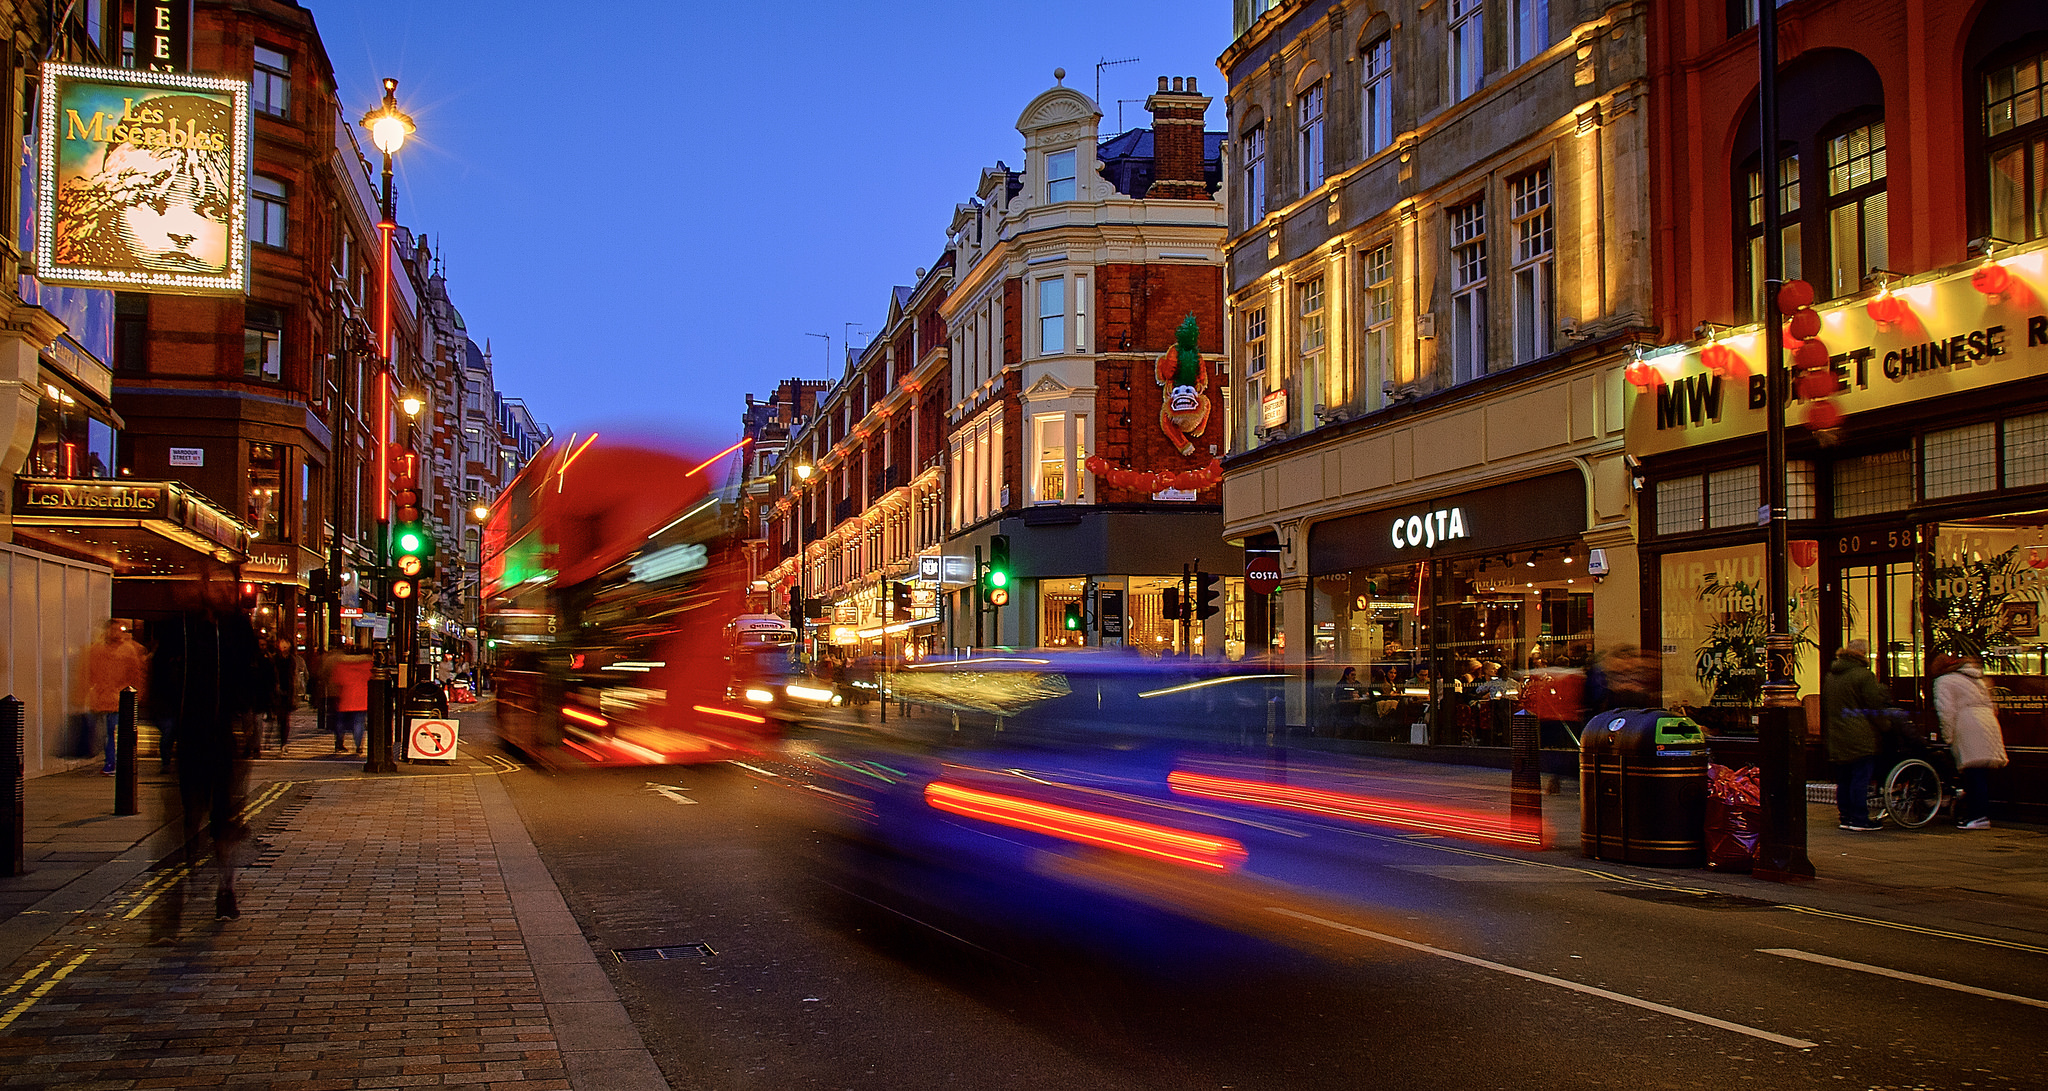 """London"" by Pedro Szekely is licenced underAttribution-ShareAlike 2.0 Generic (CC BY-SA 2.0)"